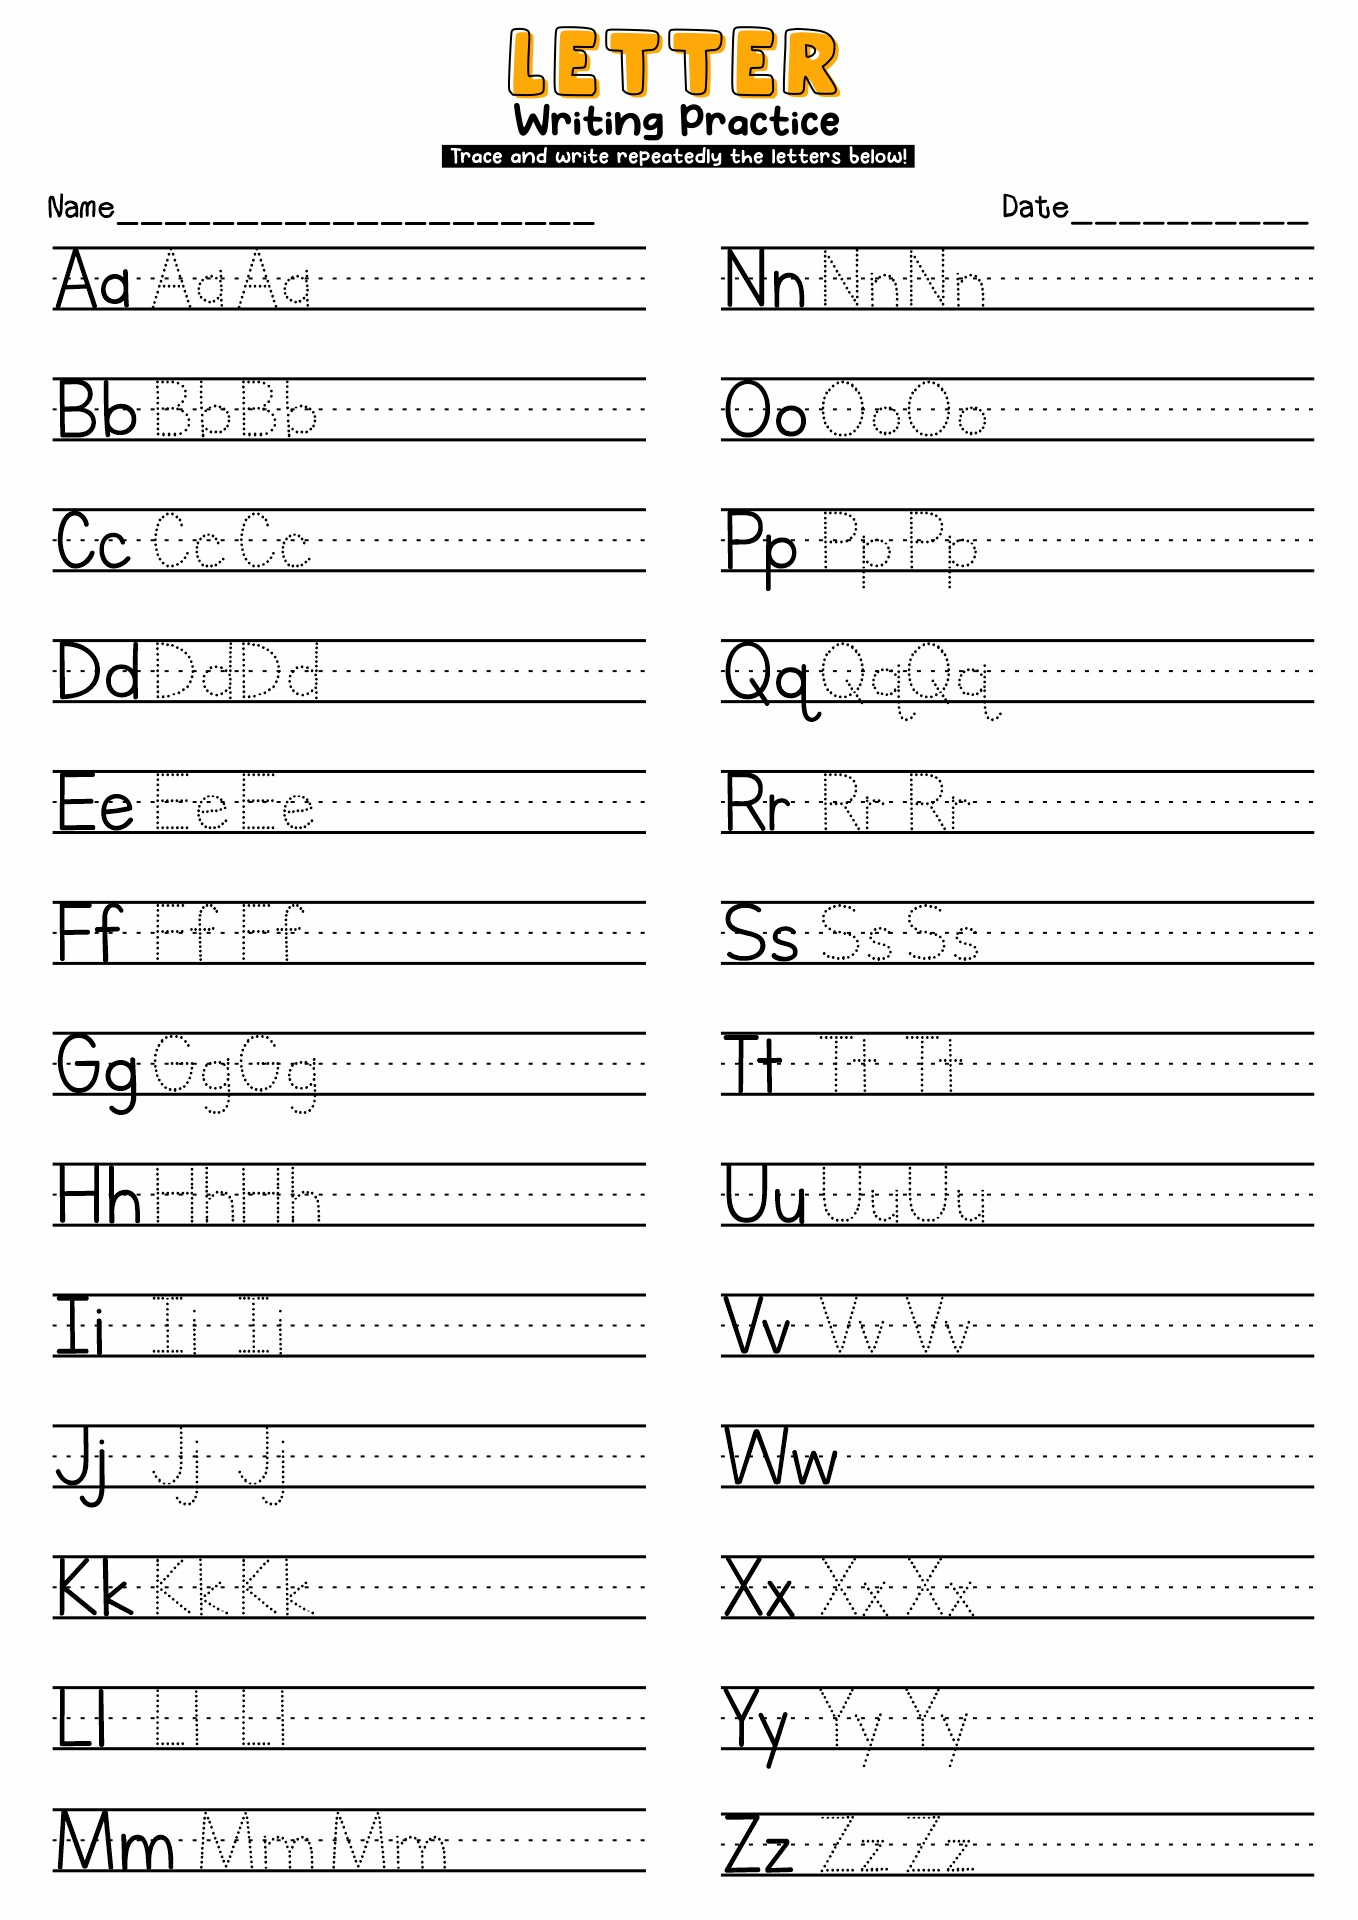 12 Best Images Of Practice Writing Alphabet Letter Worksheets